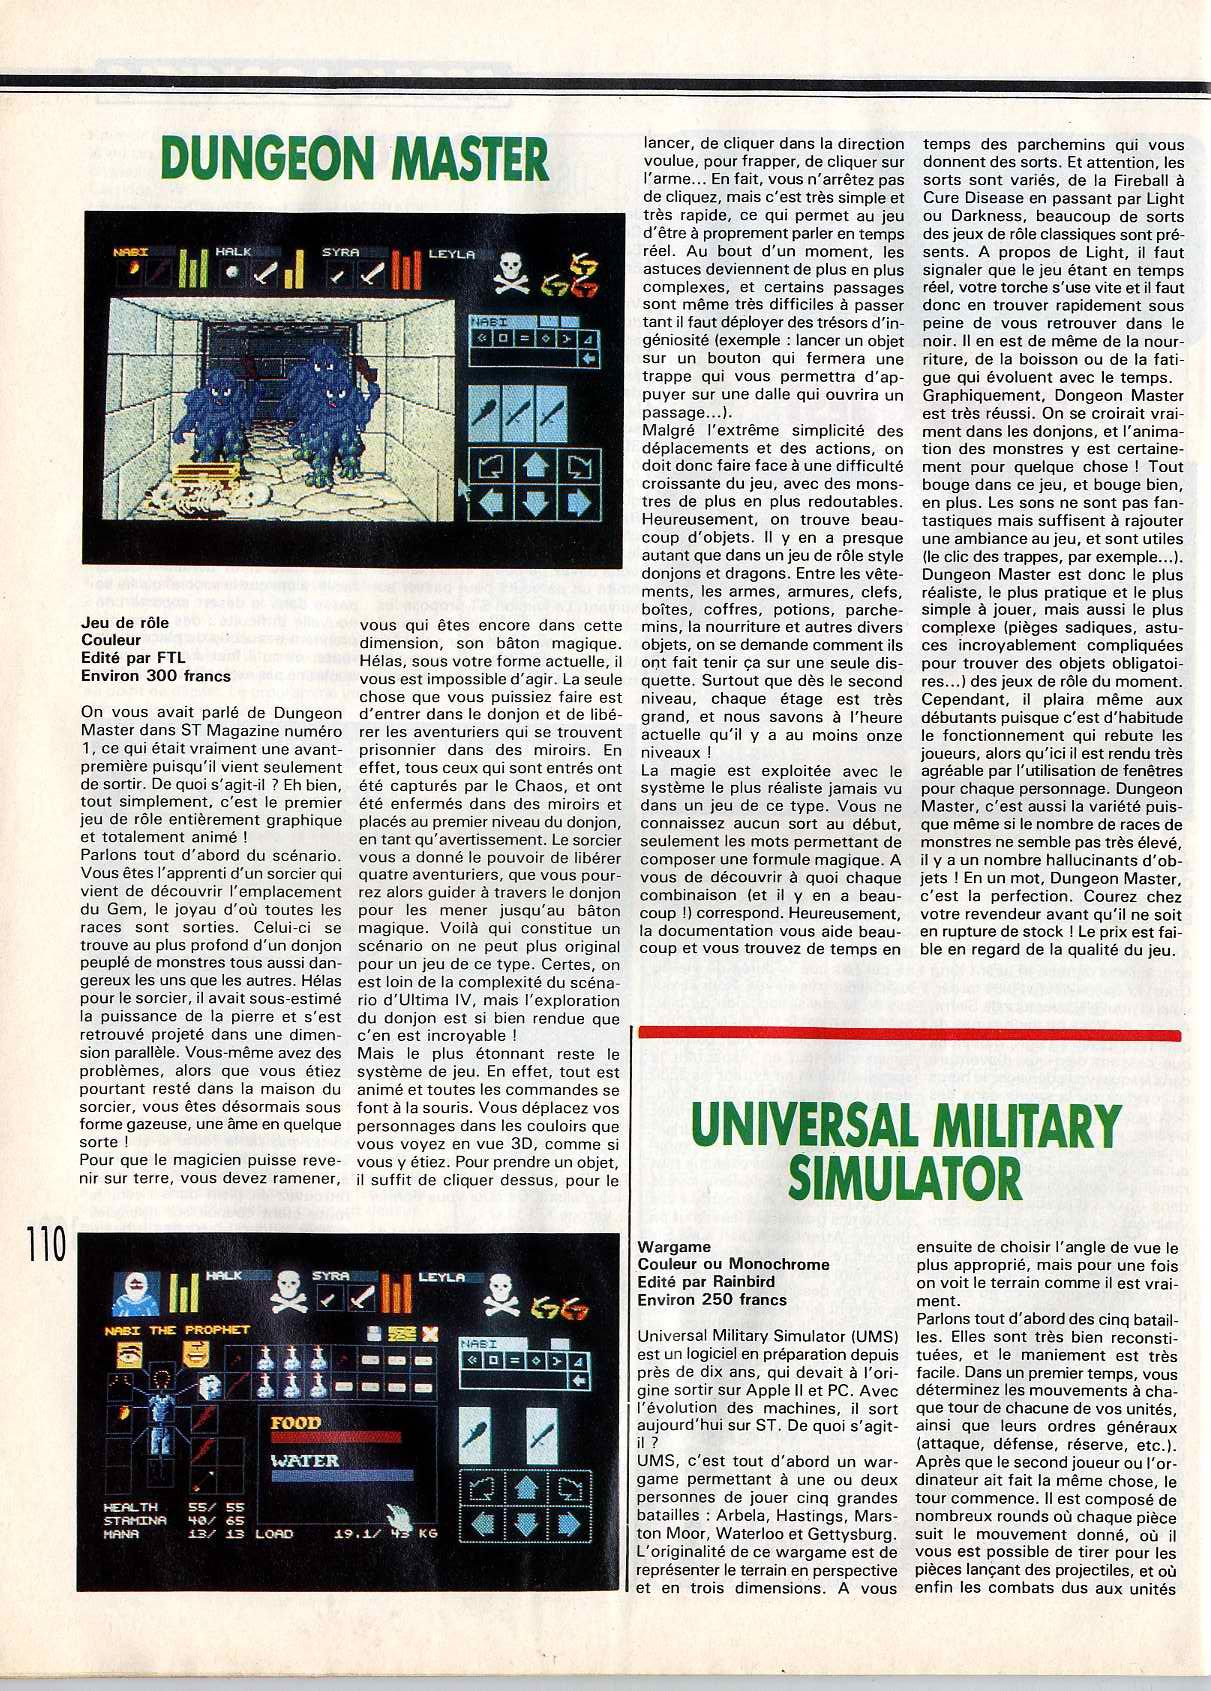 Dungeon Master for Atari ST Review published in French magazine 'STMag', Issue #17, March 1988, Page 110